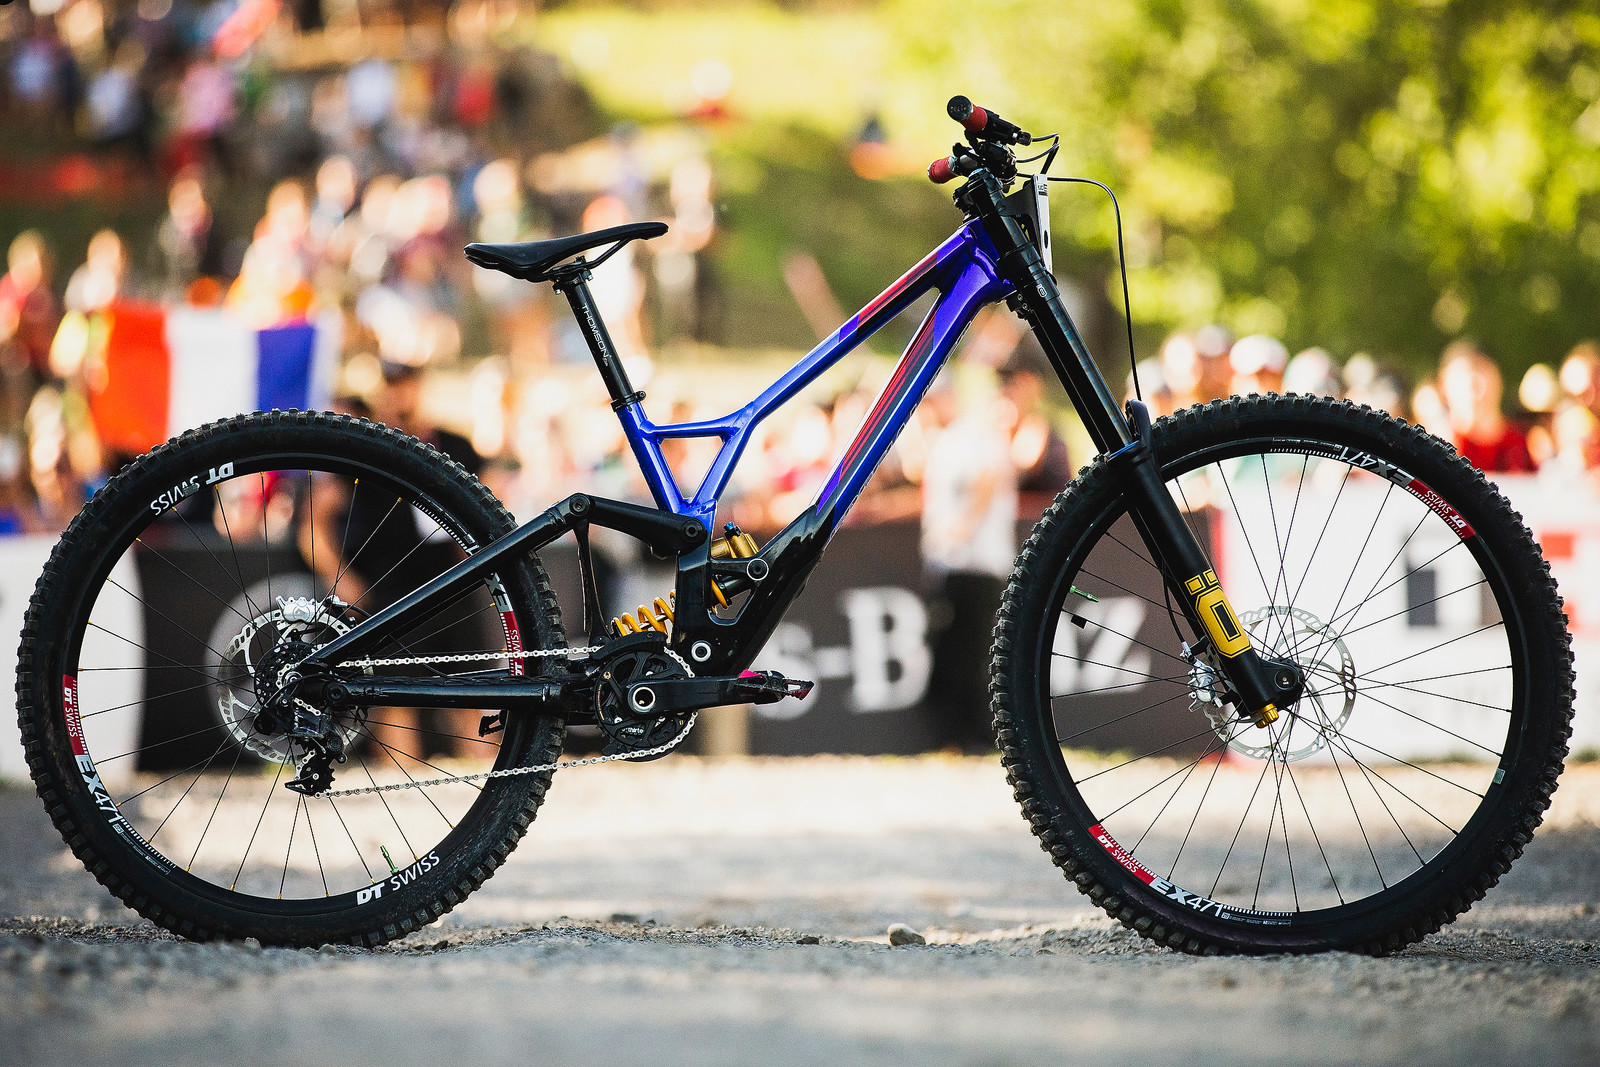 World Championships Winning Bike: Loic Bruni's Specialized Demo 29 - Winning Bike: Loic Bruni's Specialized Demo 29 - Mountain Biking Pictures - Vital MTB